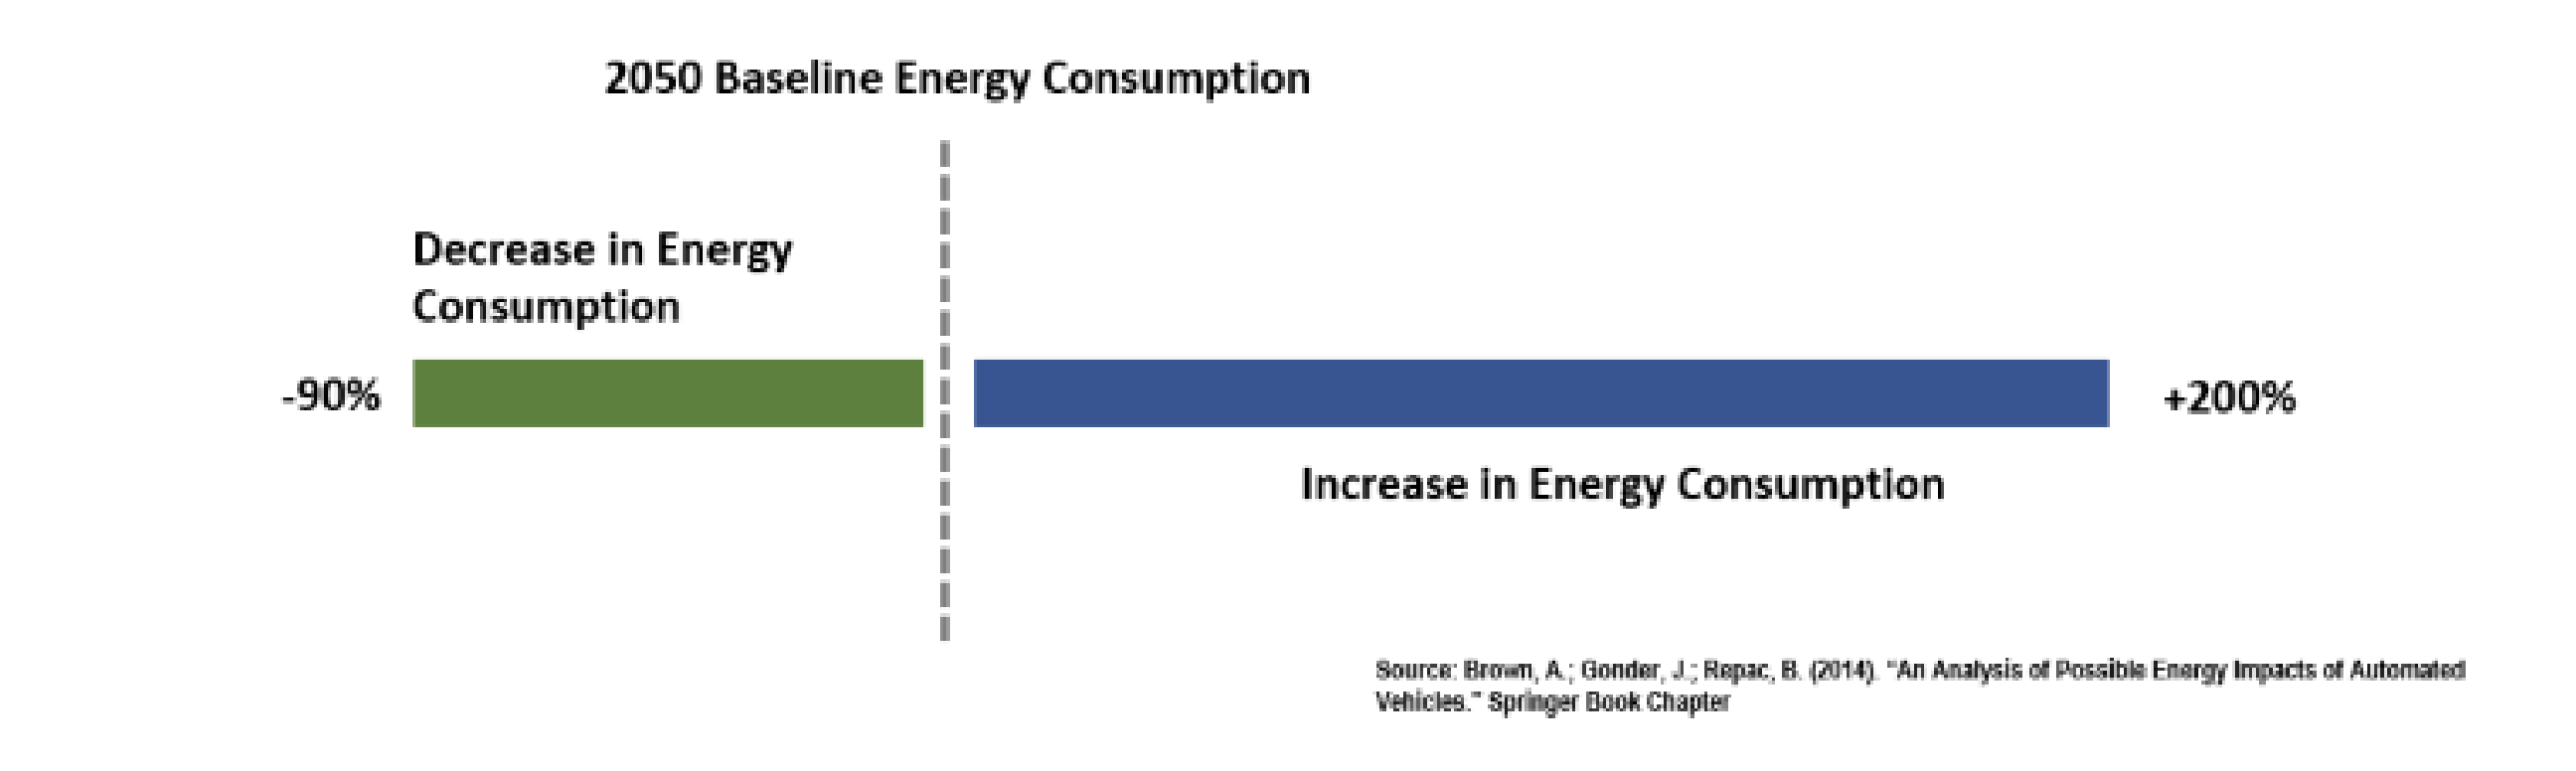 2050 baseline energy consumption forecasts for autonomous vehicles